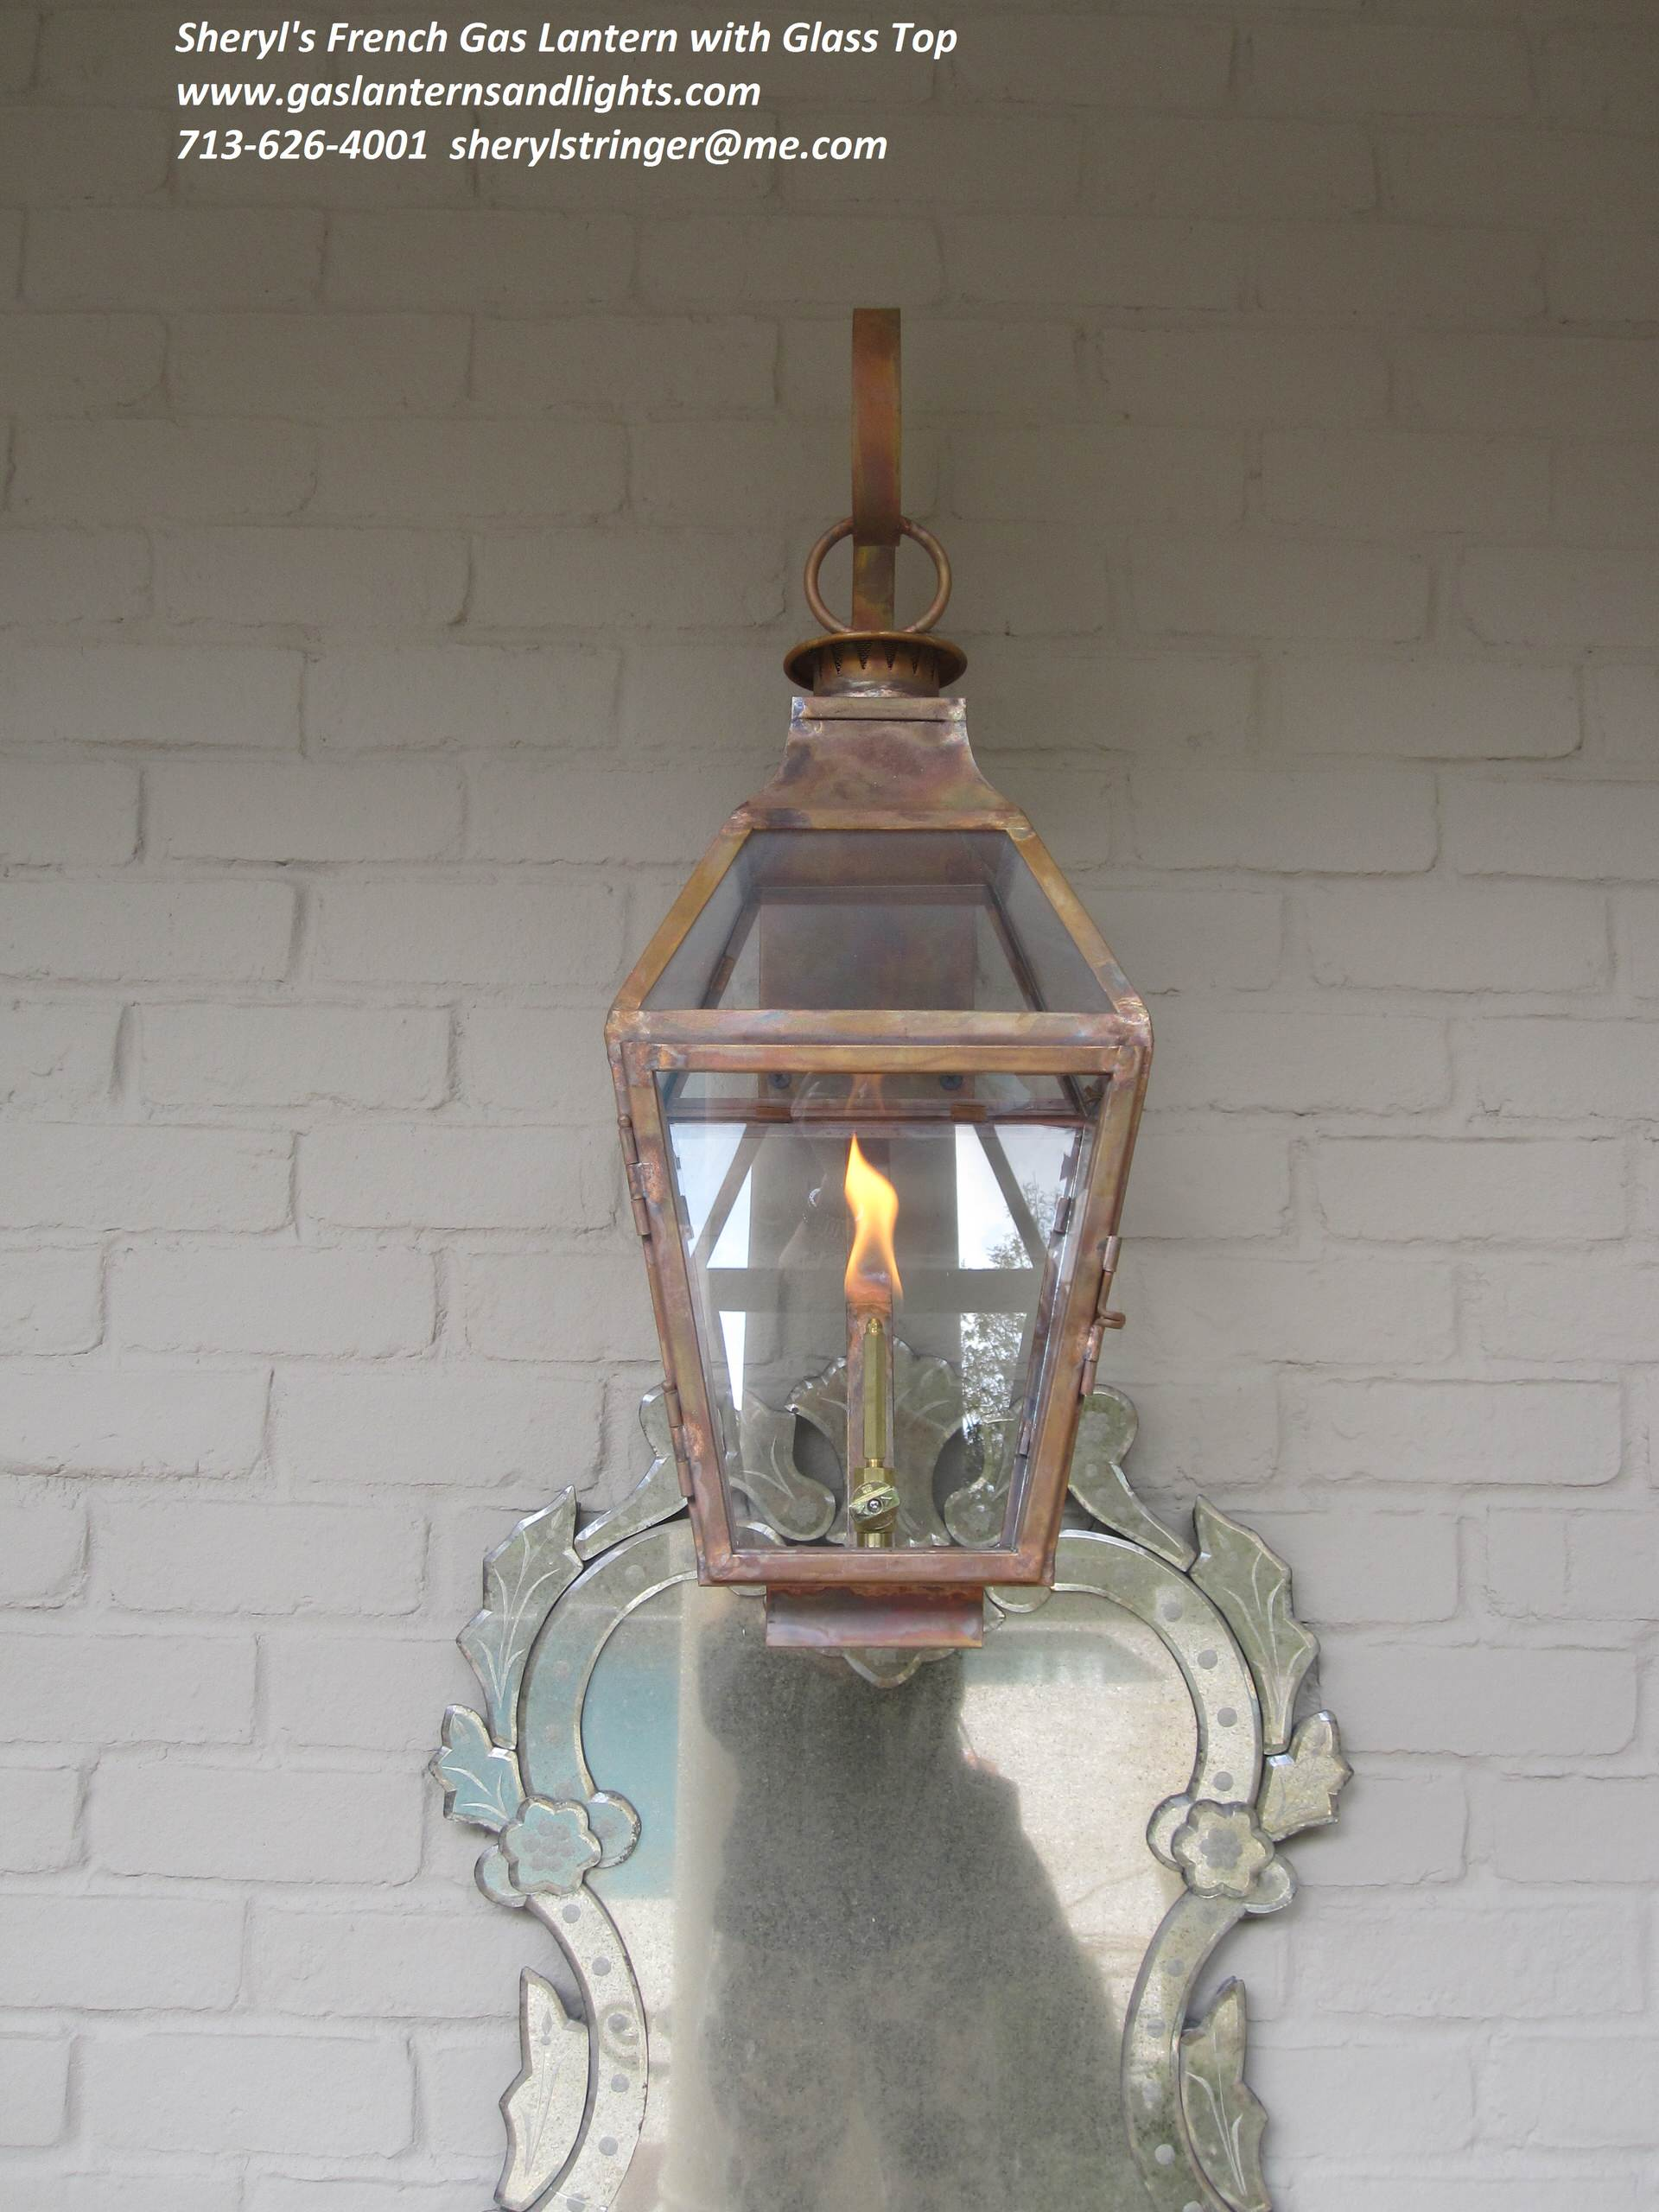 French Style Gas and Electric Lanterns by Sheryl Stringer